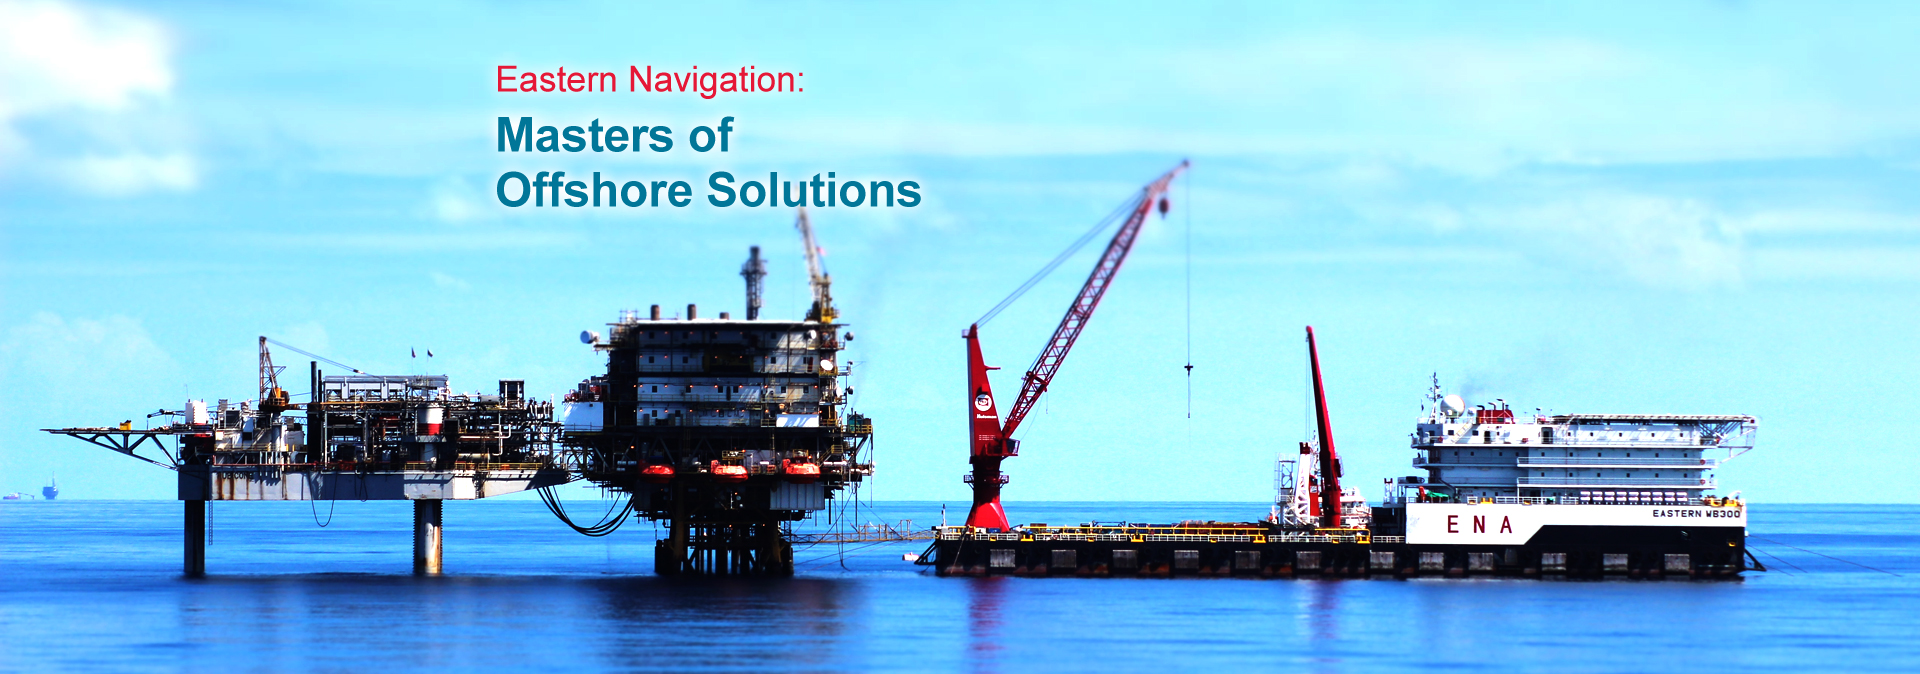 http://easternnavigation.com/our-fleet/offshore-accommodation-vessels/